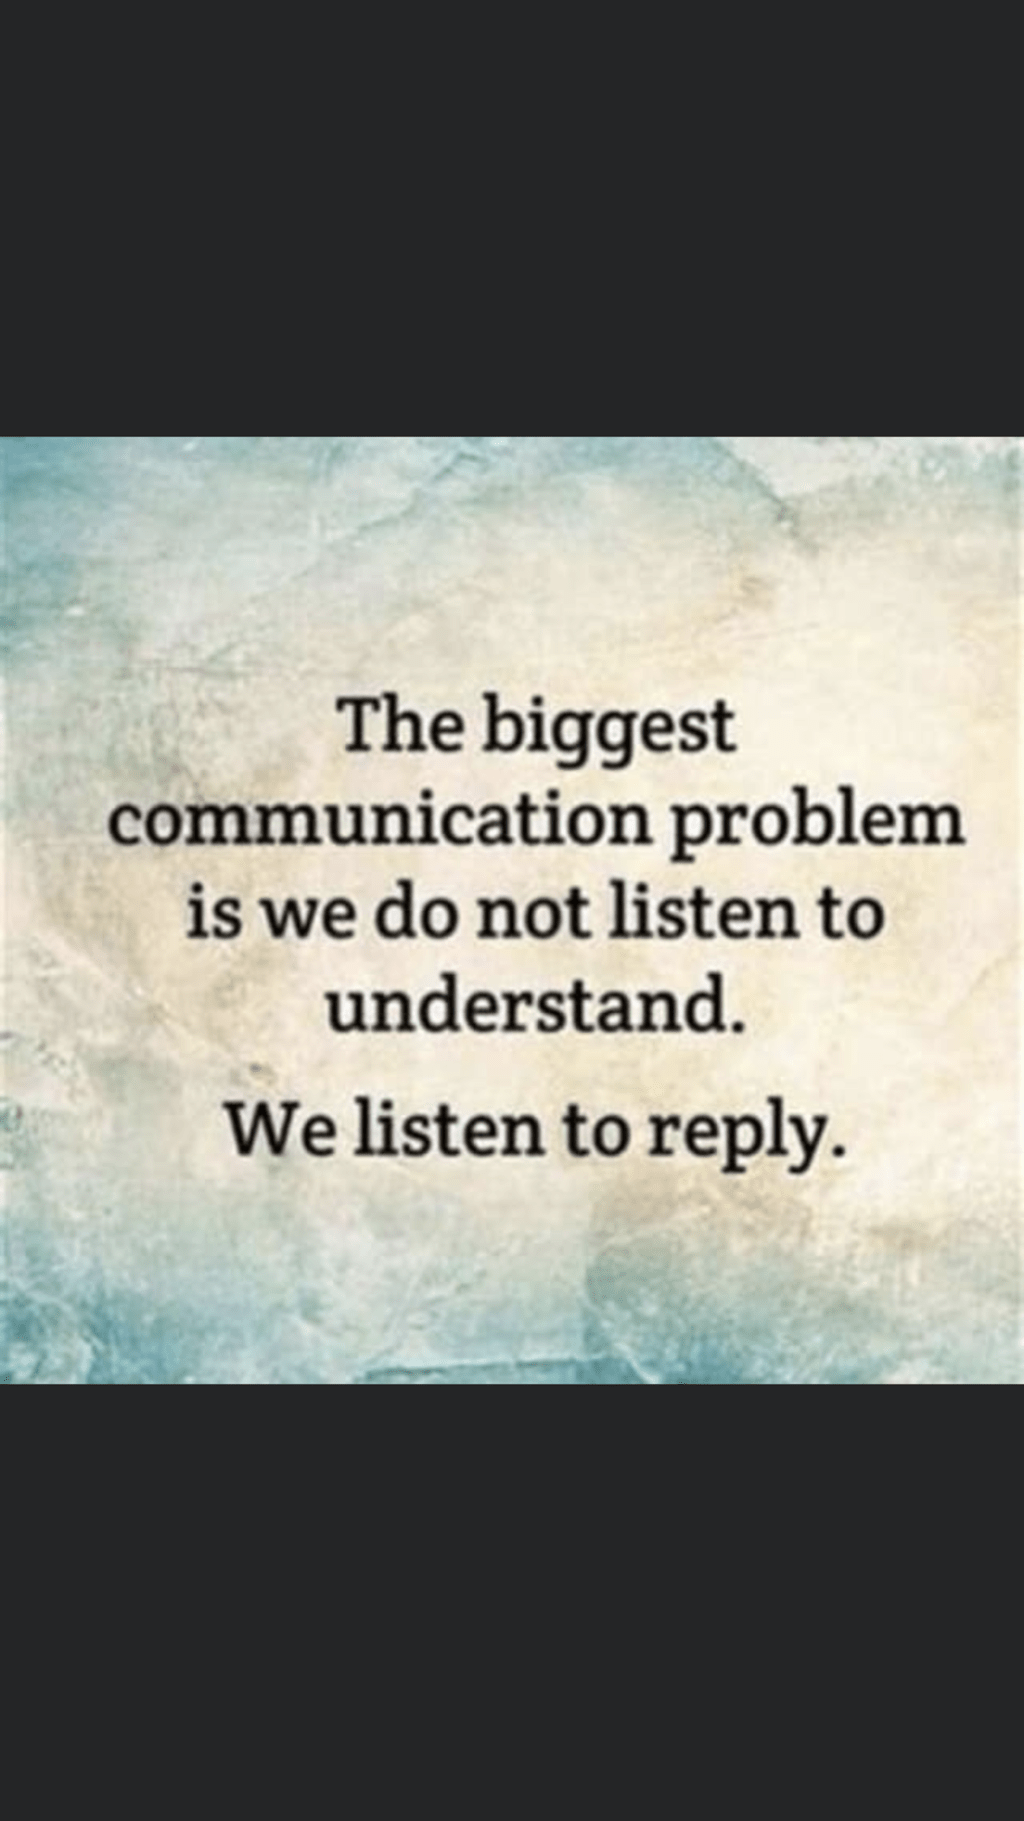 Listen to Understand, not to Reply